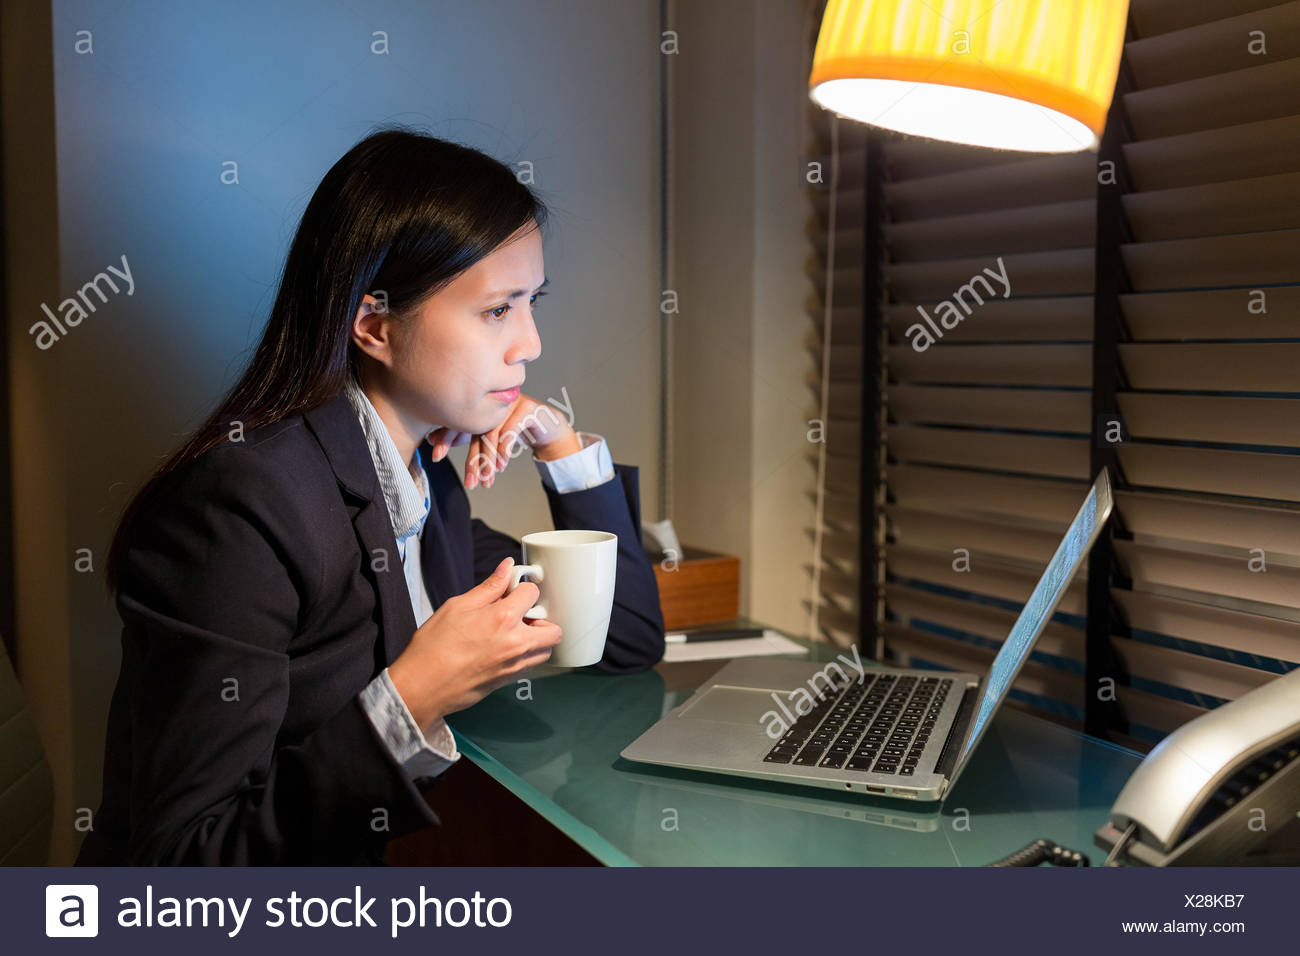 Businesswoman looking at laptop computer and drink of coffee - Stock Image